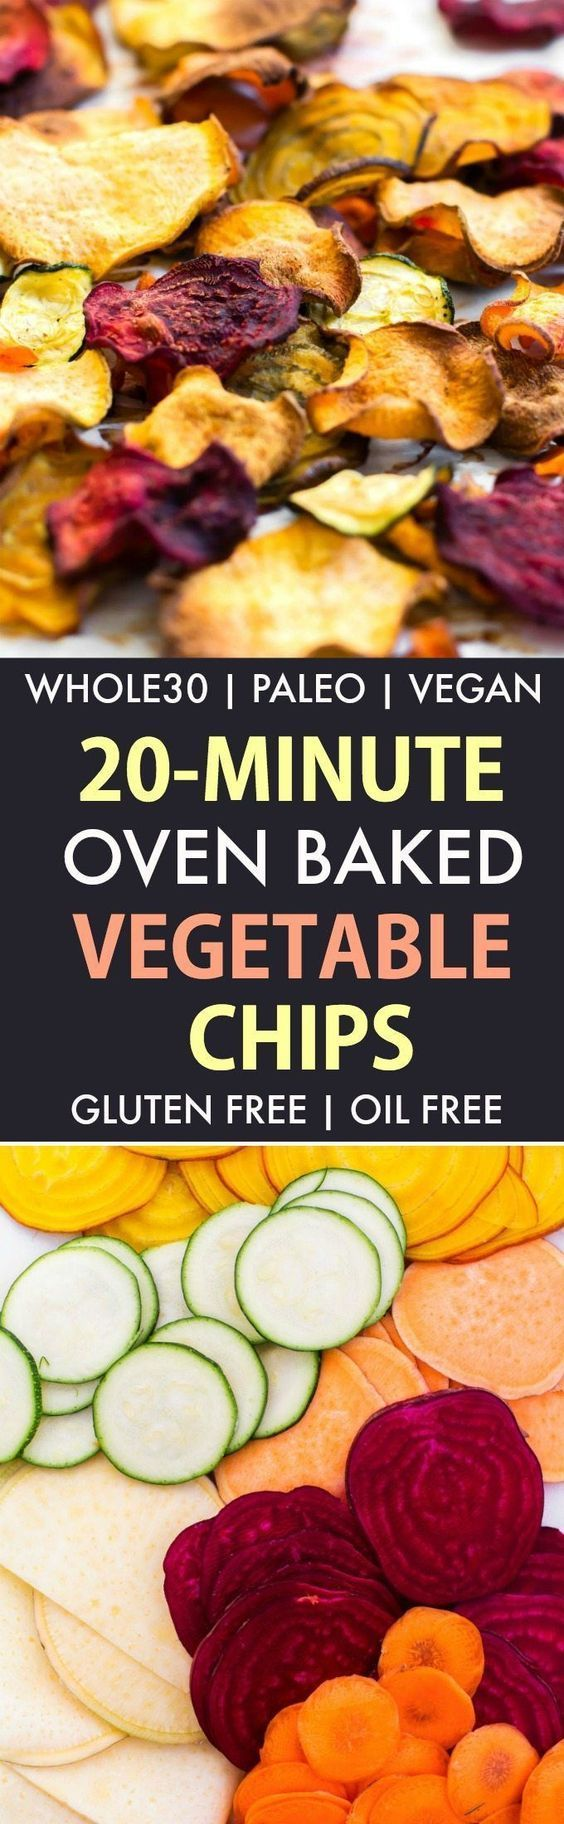 Crispy Oven Baked Vegetable Chips (Whole30, Paleo, Vegan, Gluten Free)- Easy crispy oil-free baked veggies which are the perfect whole30 approved snack or savory side dish- Ready in 20 minutes! #whole30 #whole30approved #paleorecipe - Recipe on thebigmansworld.com